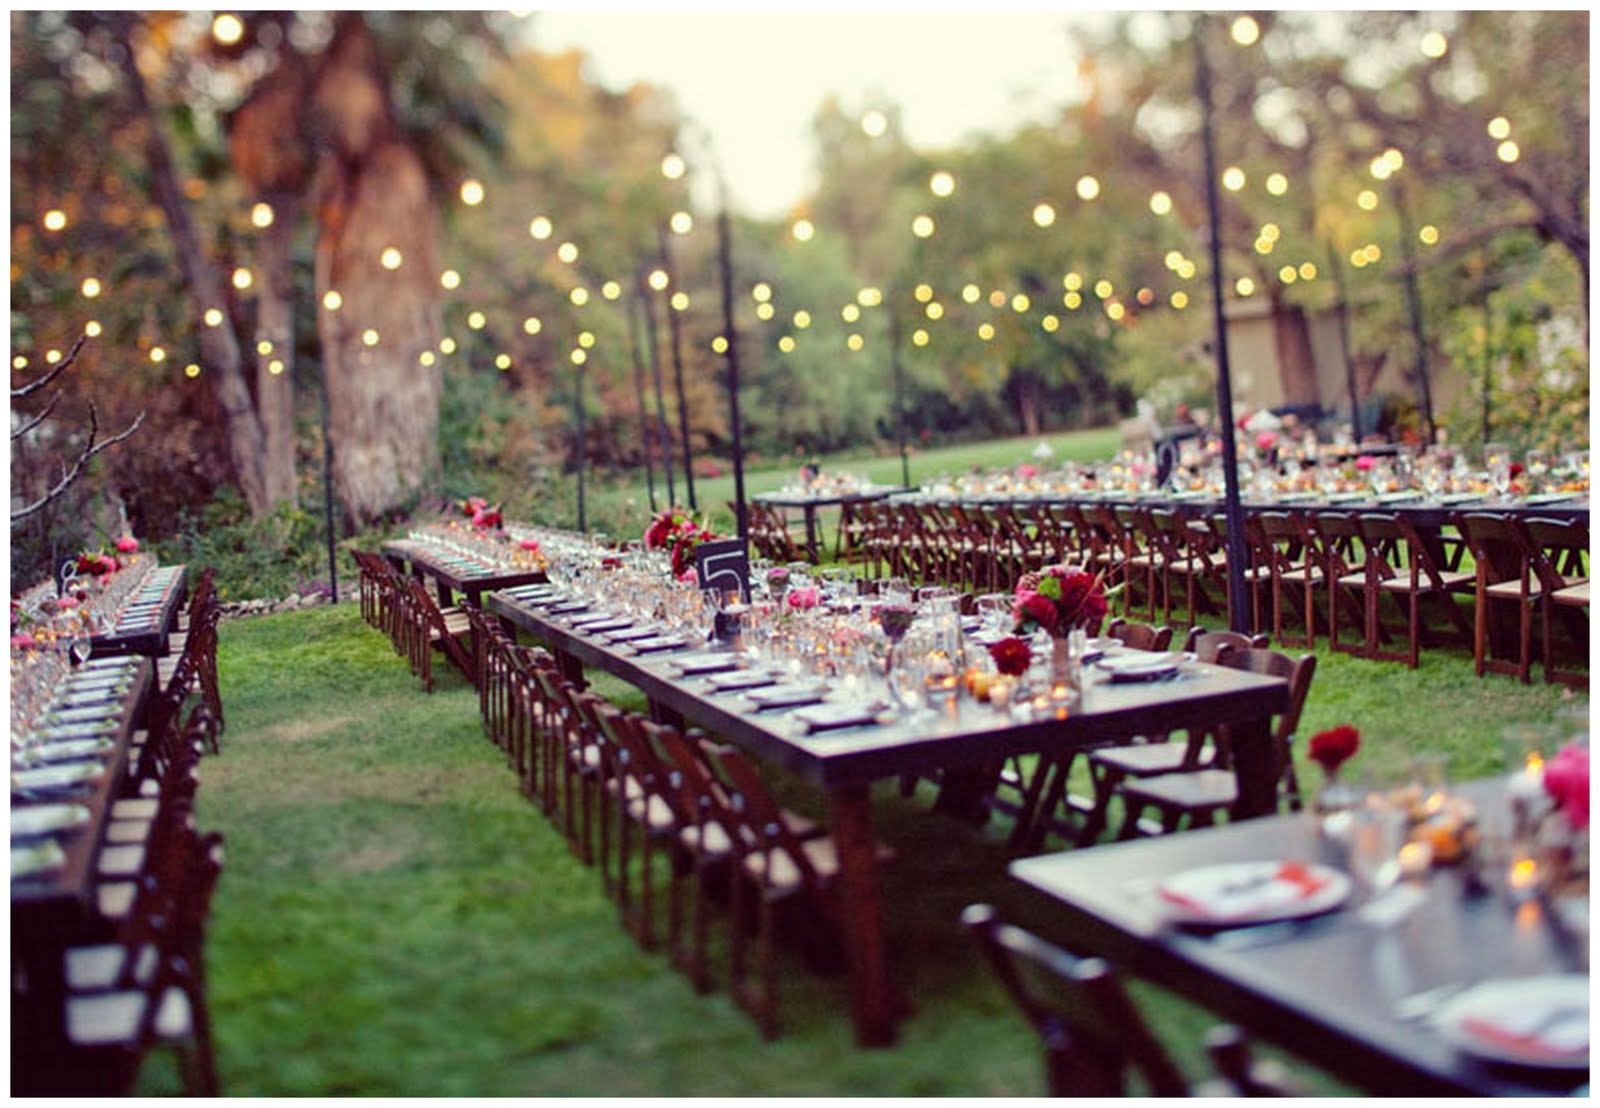 Real enchanted garden wedding kelly steve for Boda en un jardin